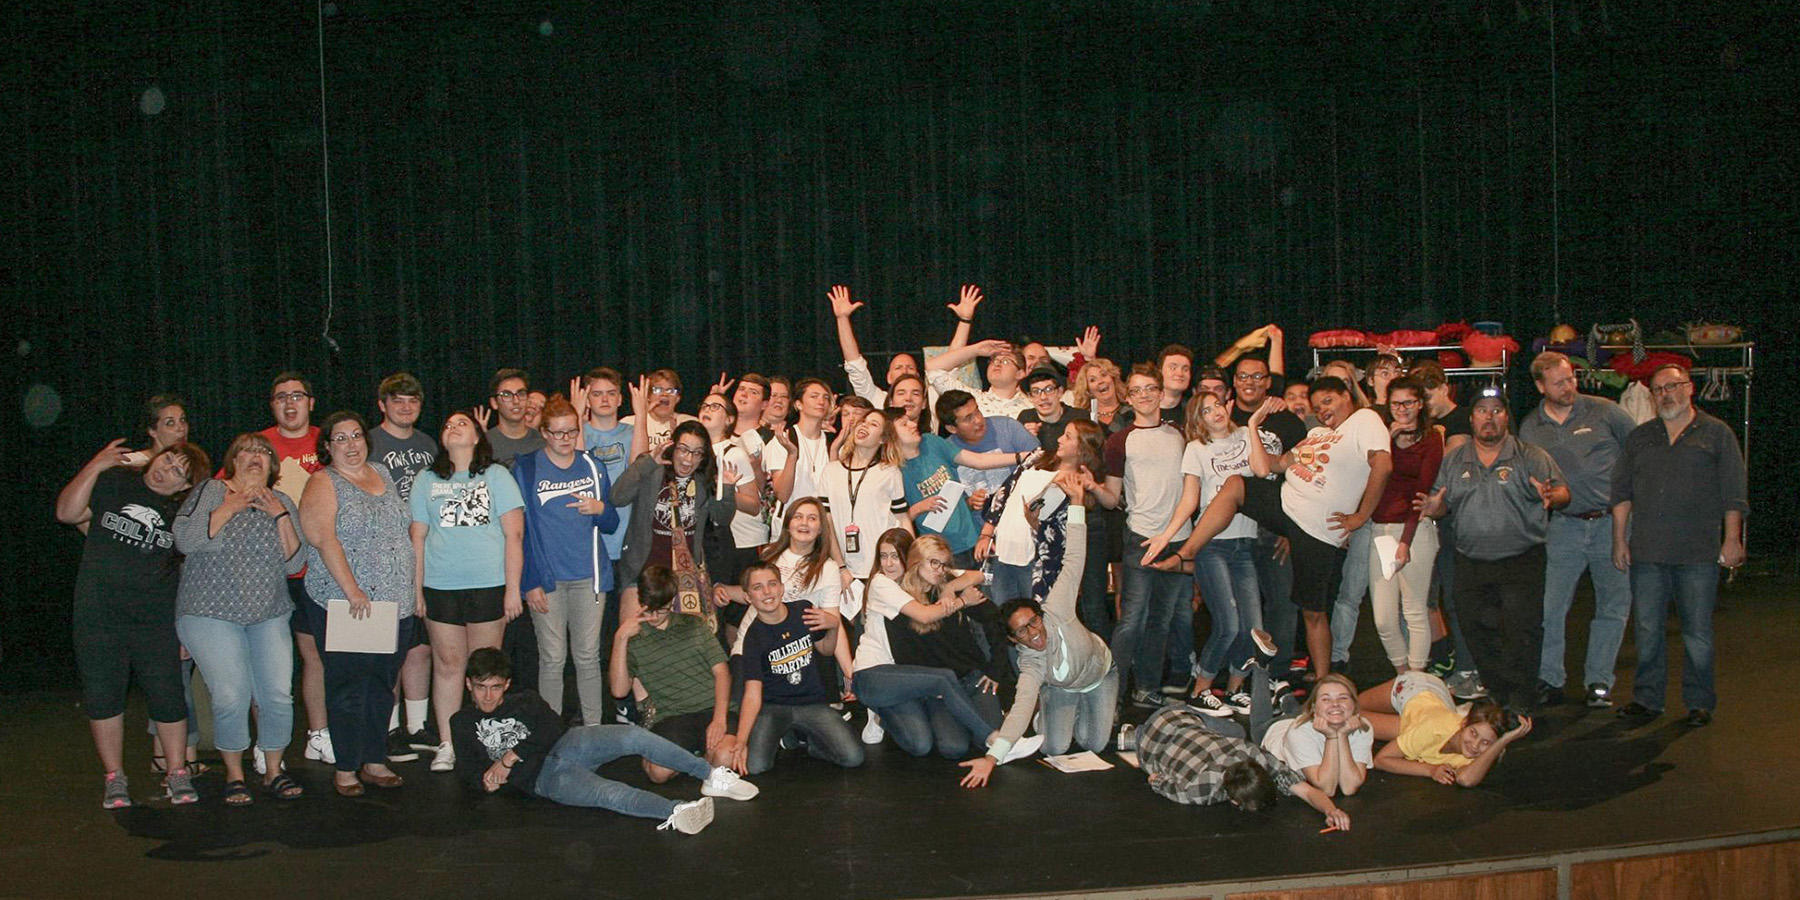 ICC Preforming Arts group photo